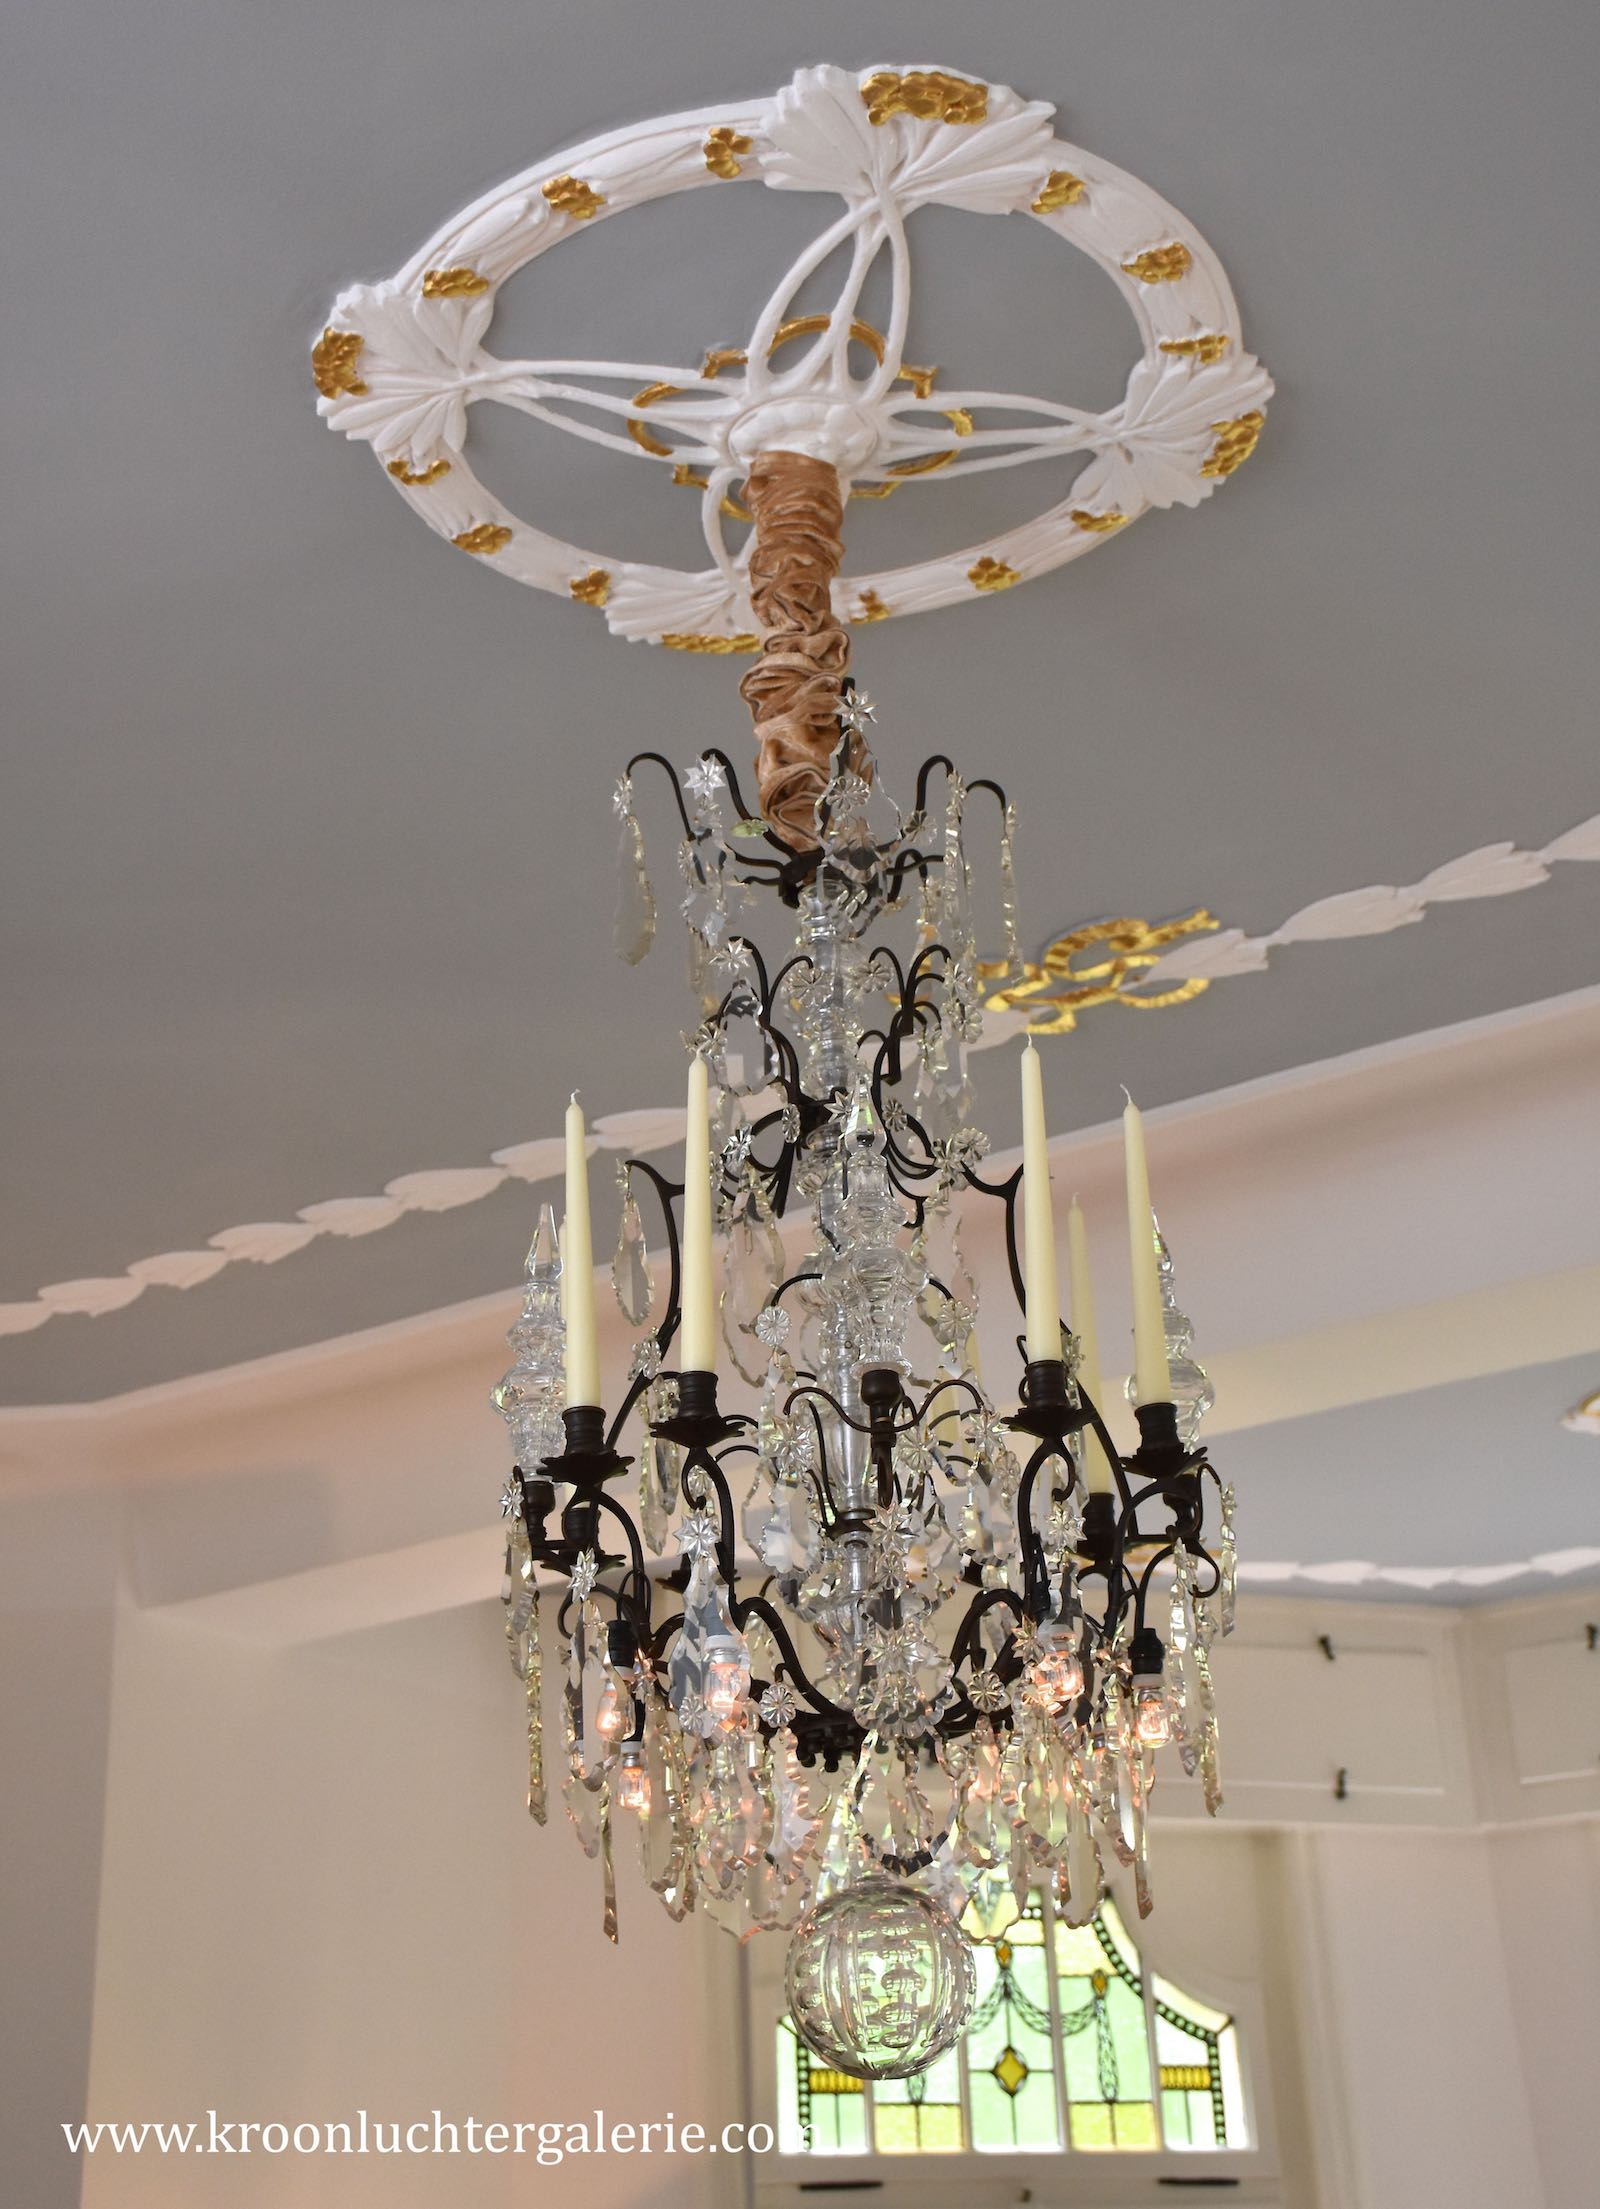 19th century French crystal chandelier with candles